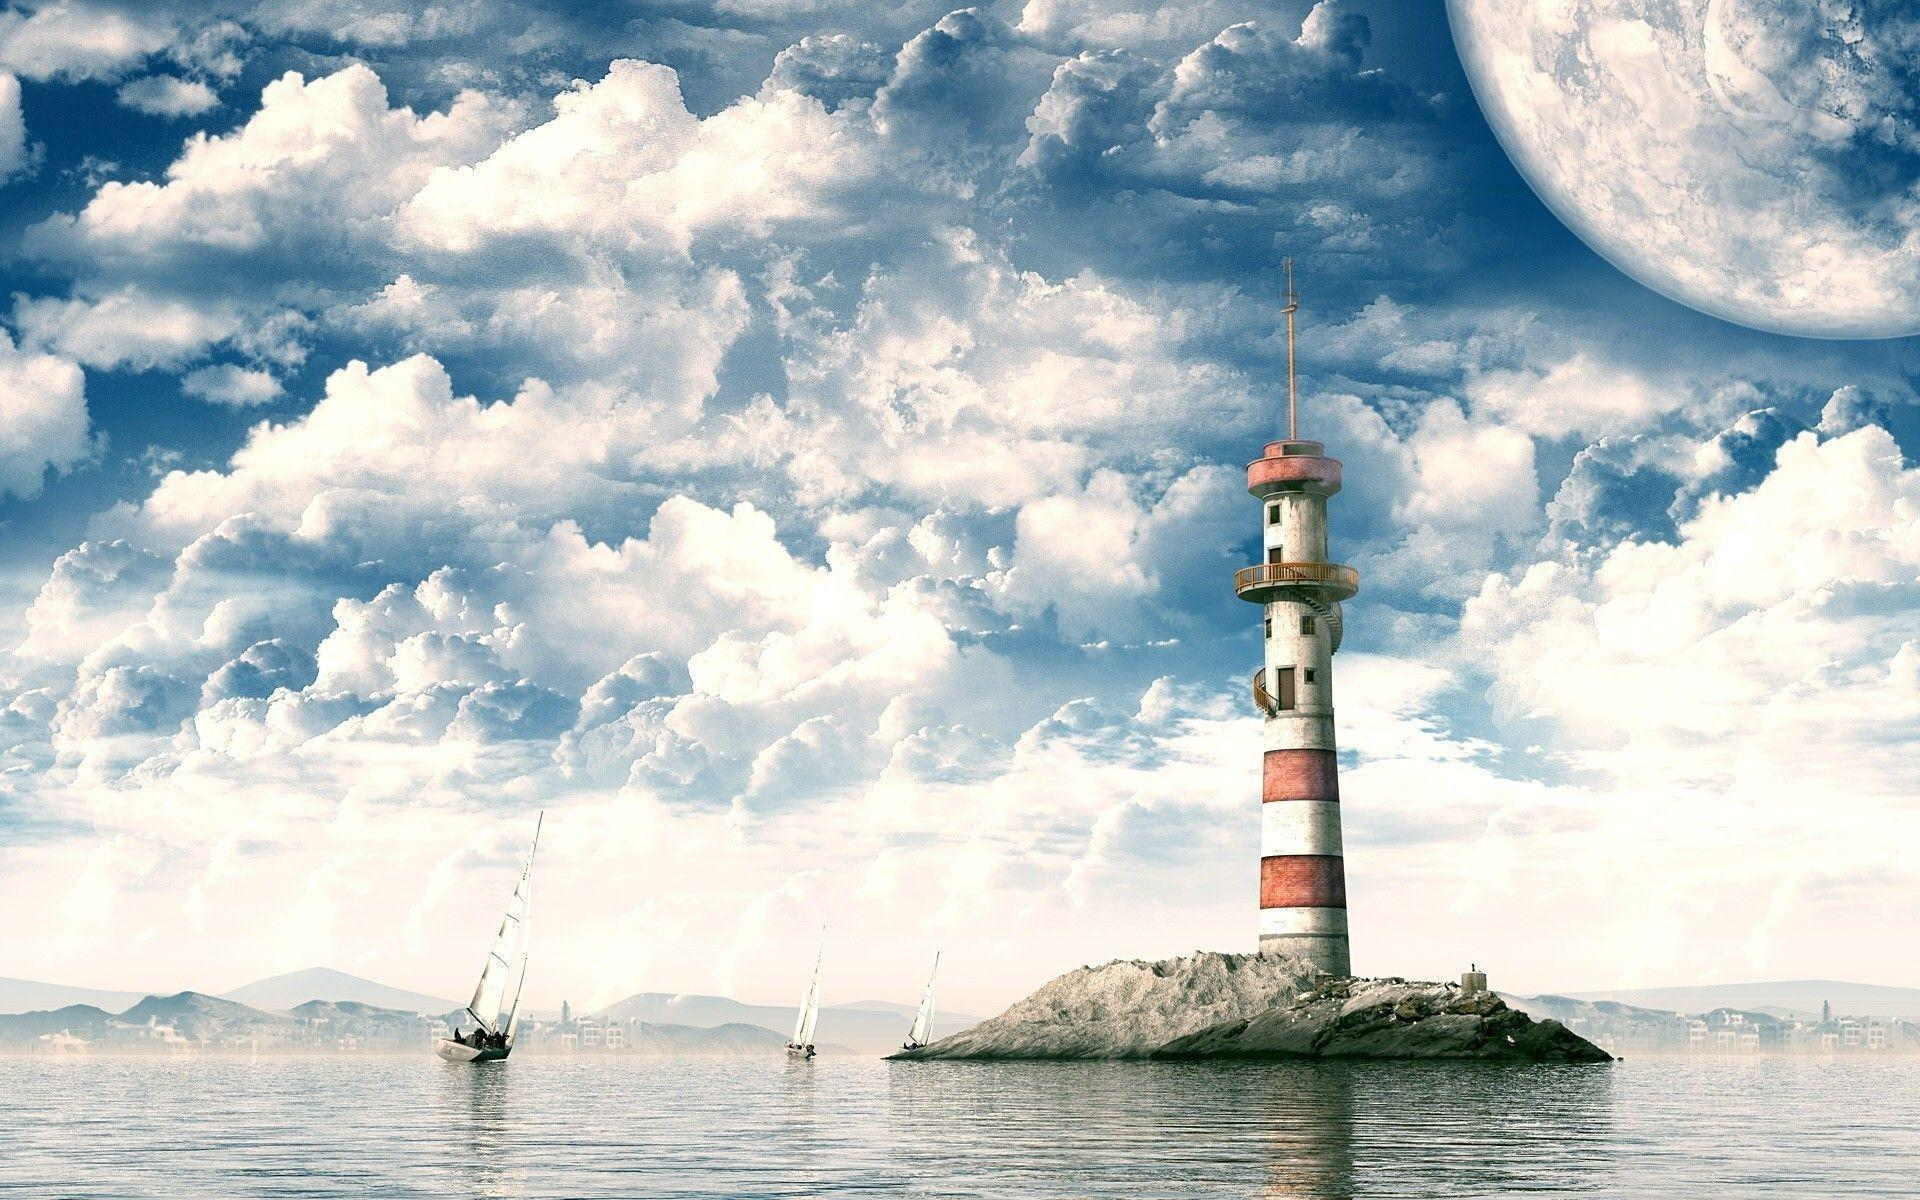 Sailboats and lighthouse Wallpaper #